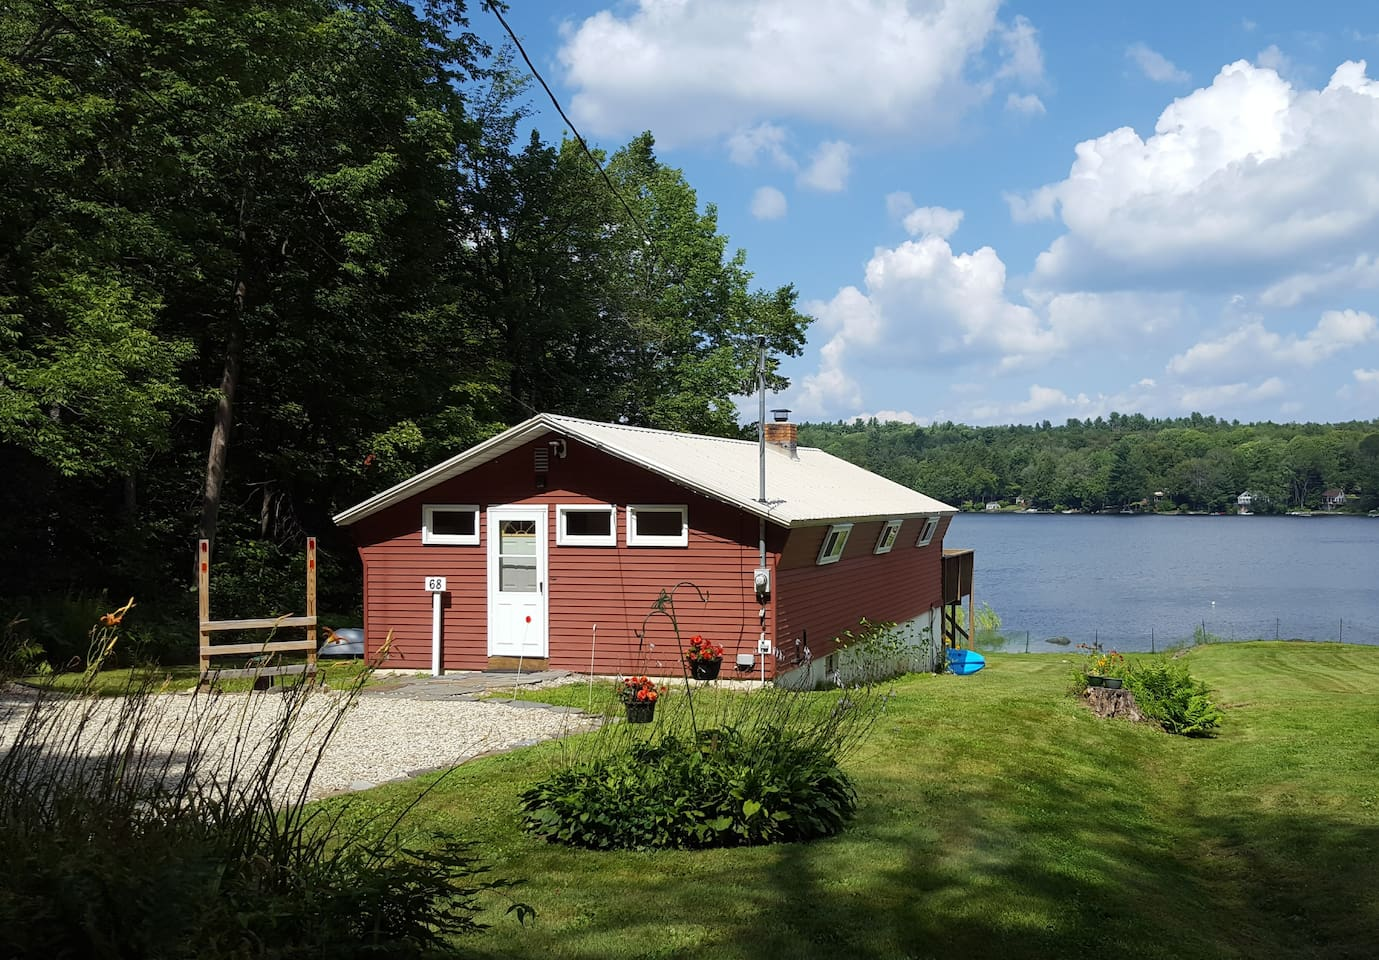 In the summer, the lake is ideal for boating, swimming, and fishing.